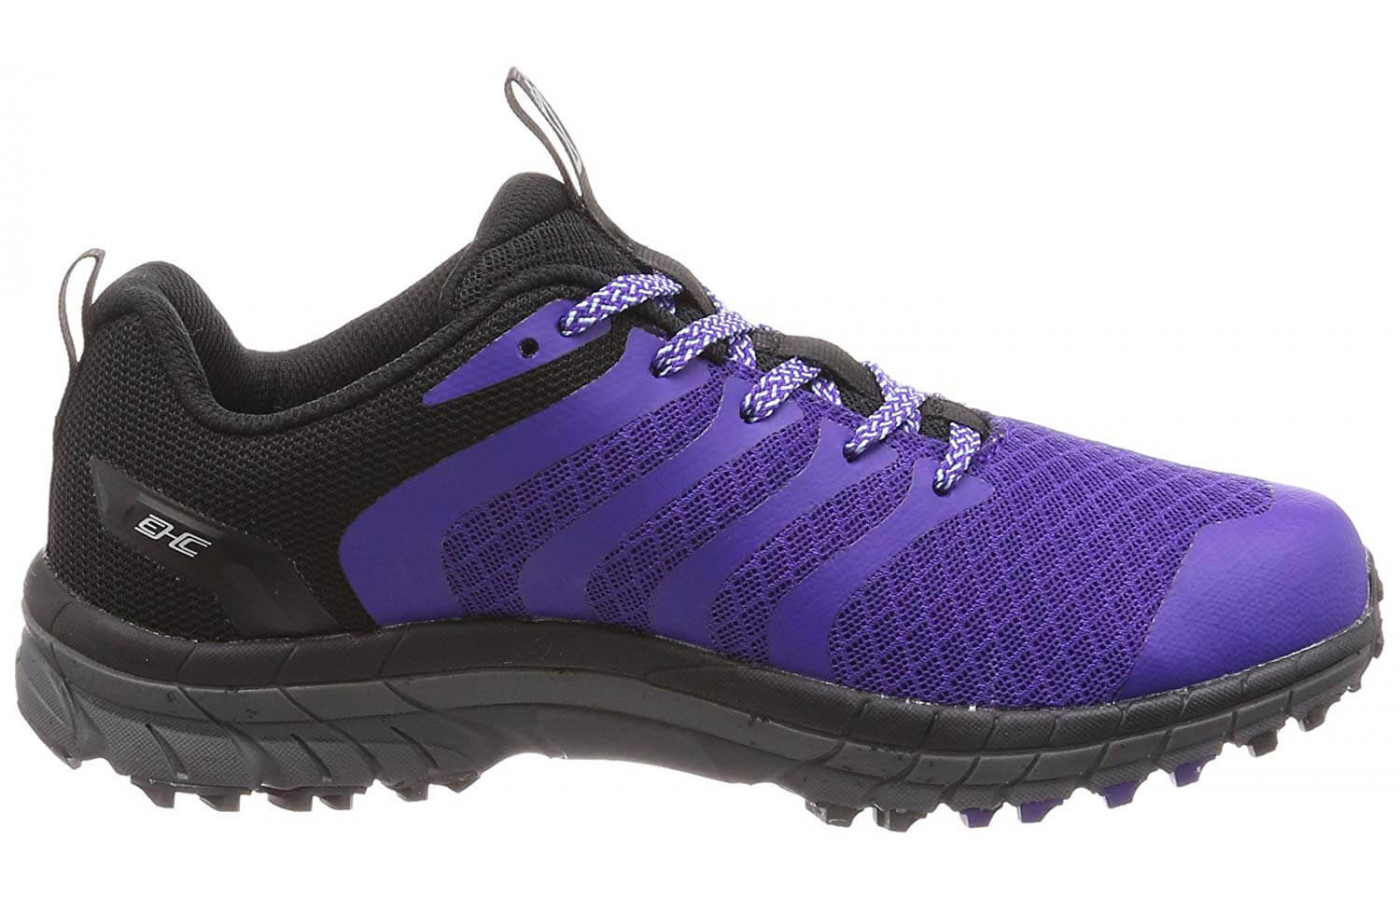 The Parkclaw 275's PowerFlow+ midsole provides a higher level of cushioning and responsiveness.